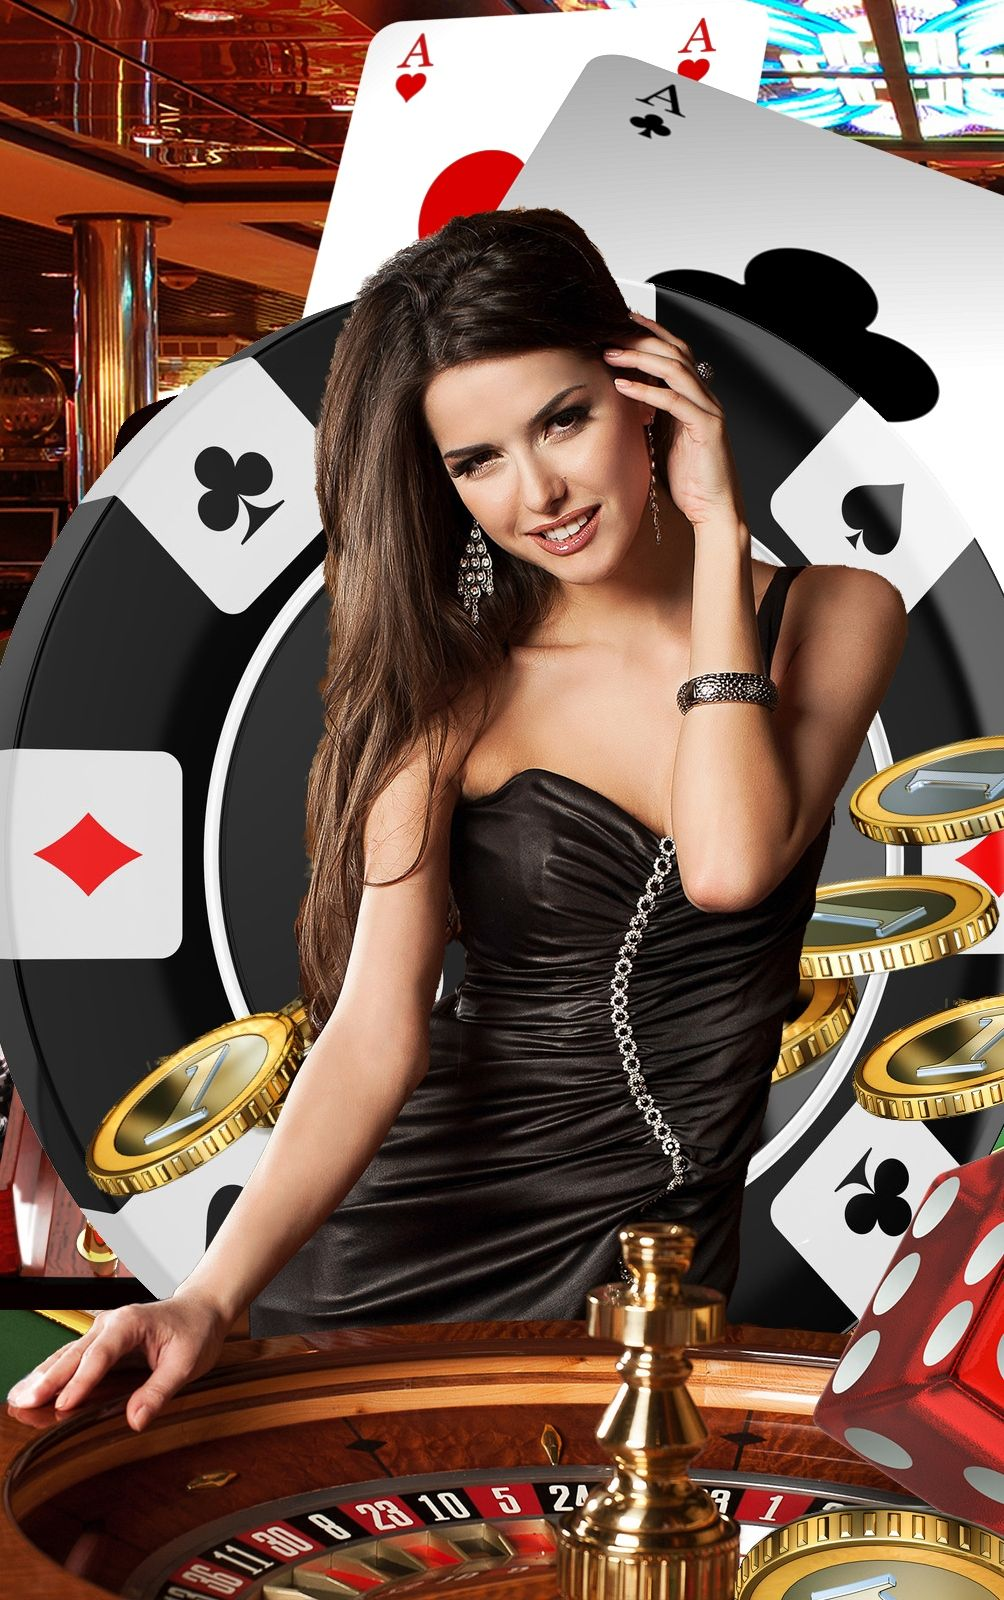 Gambling guide offering online casino new jersey